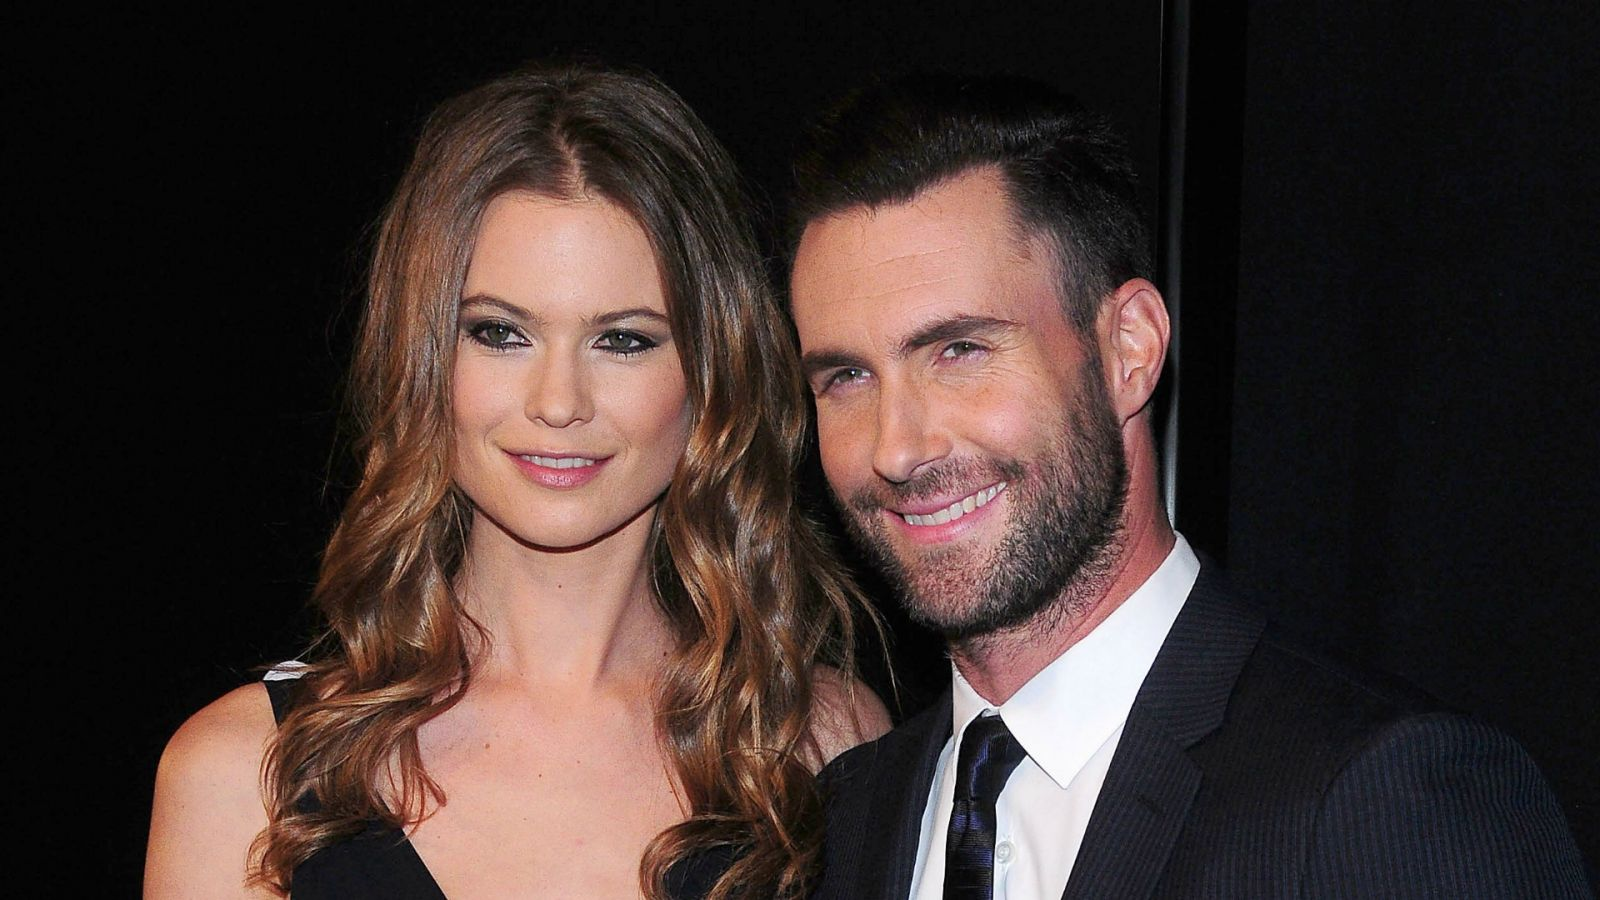 Victoria secret models dating maroon 5